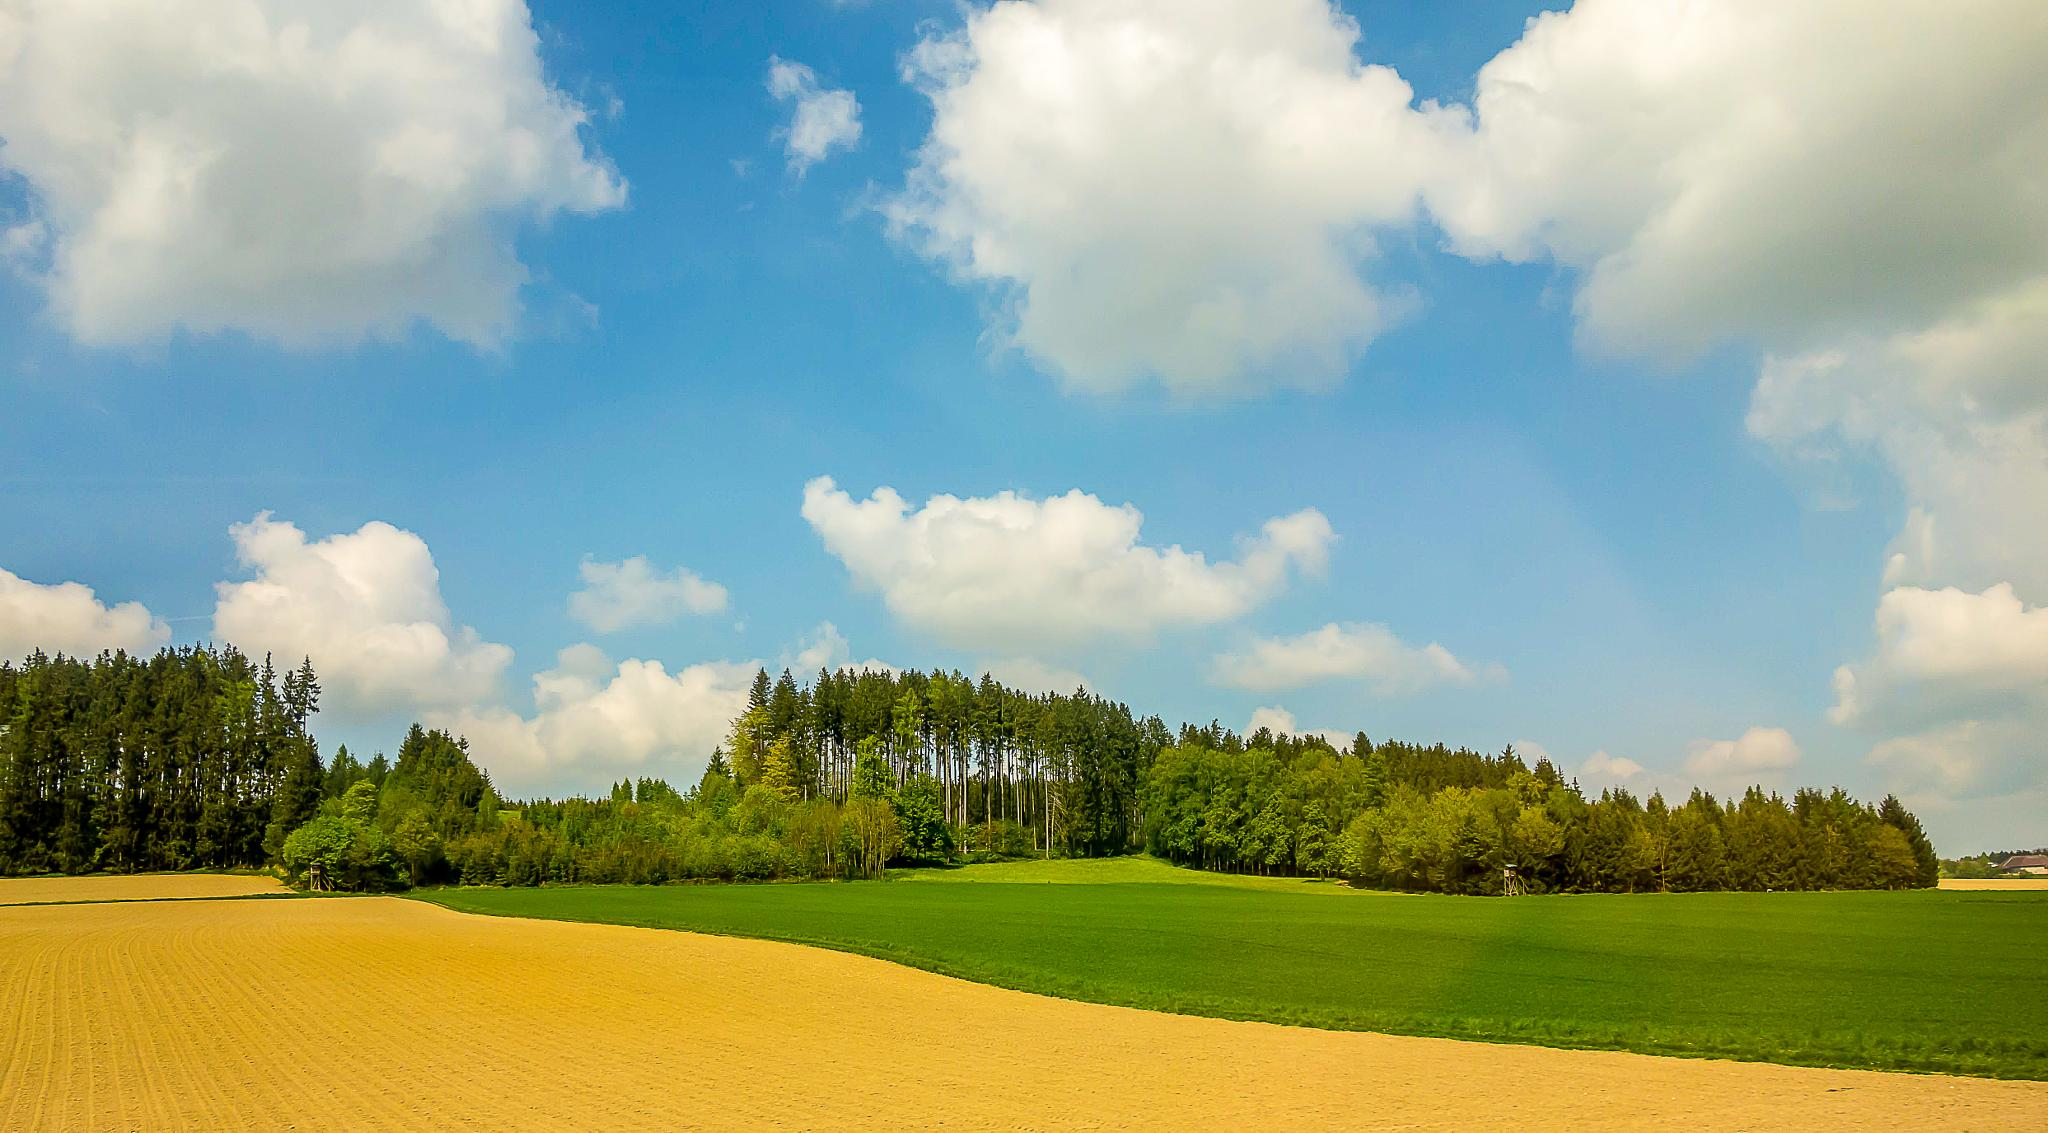 Fields, forest and puffy clouds by Malcolm